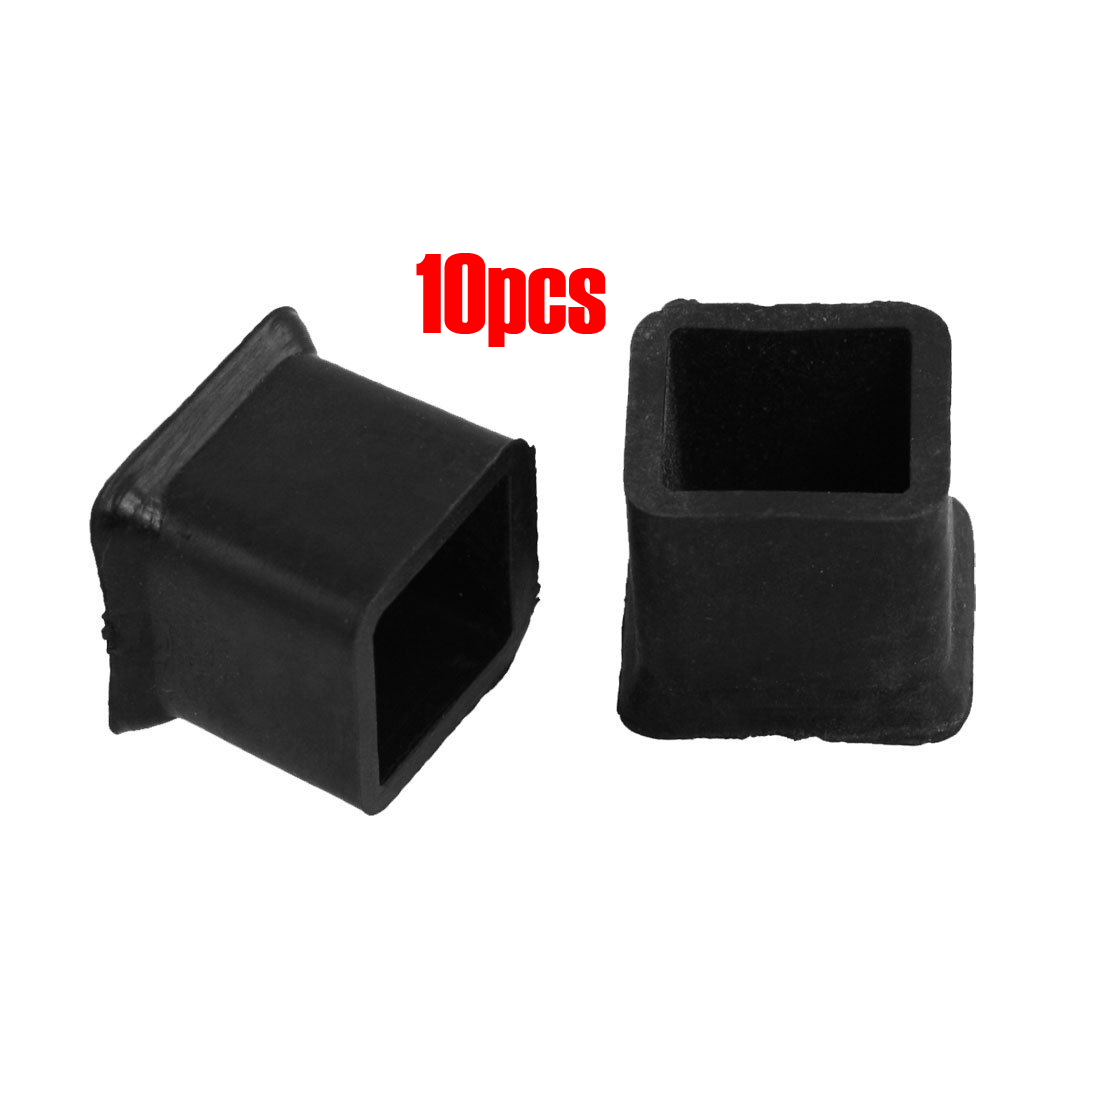 HOT GCZW-10 Pcs Furniture Chair Table Leg Rubber Foot Covers Protectors 20mm X 20mm